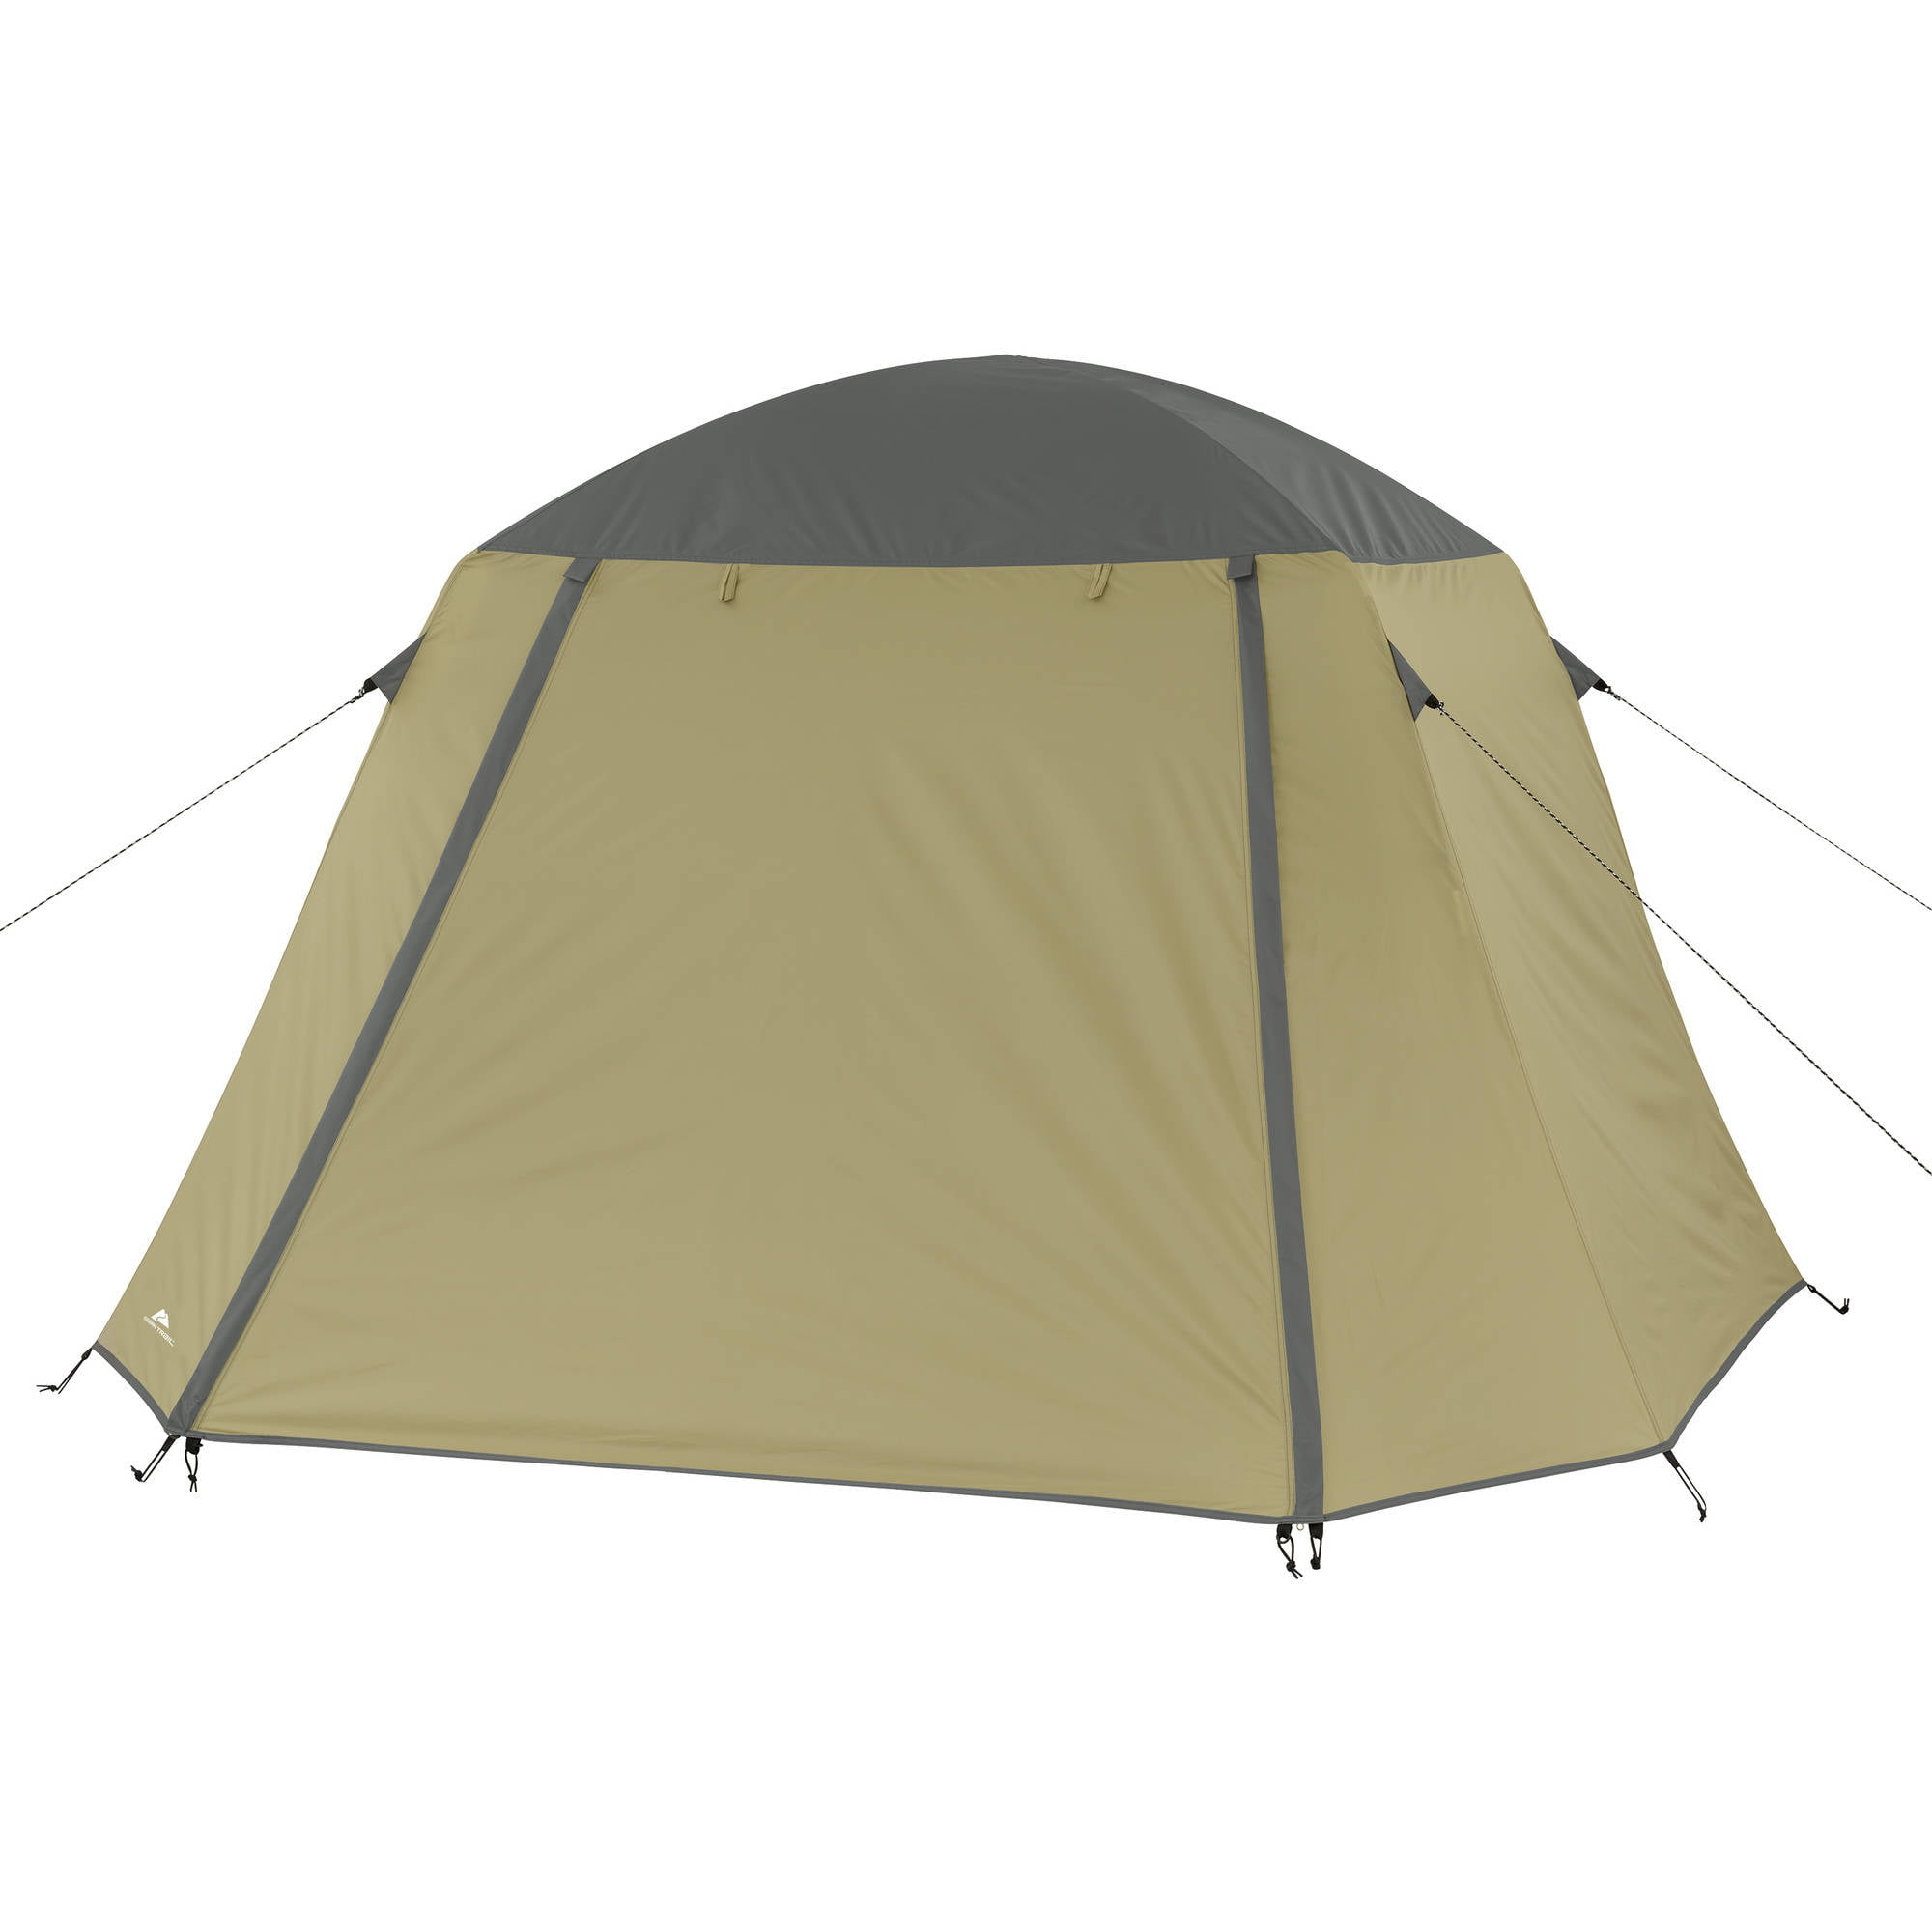 Ozark Trail Two-Person Cot Tent by CAMPVALLEY XIAMEN CO LTD